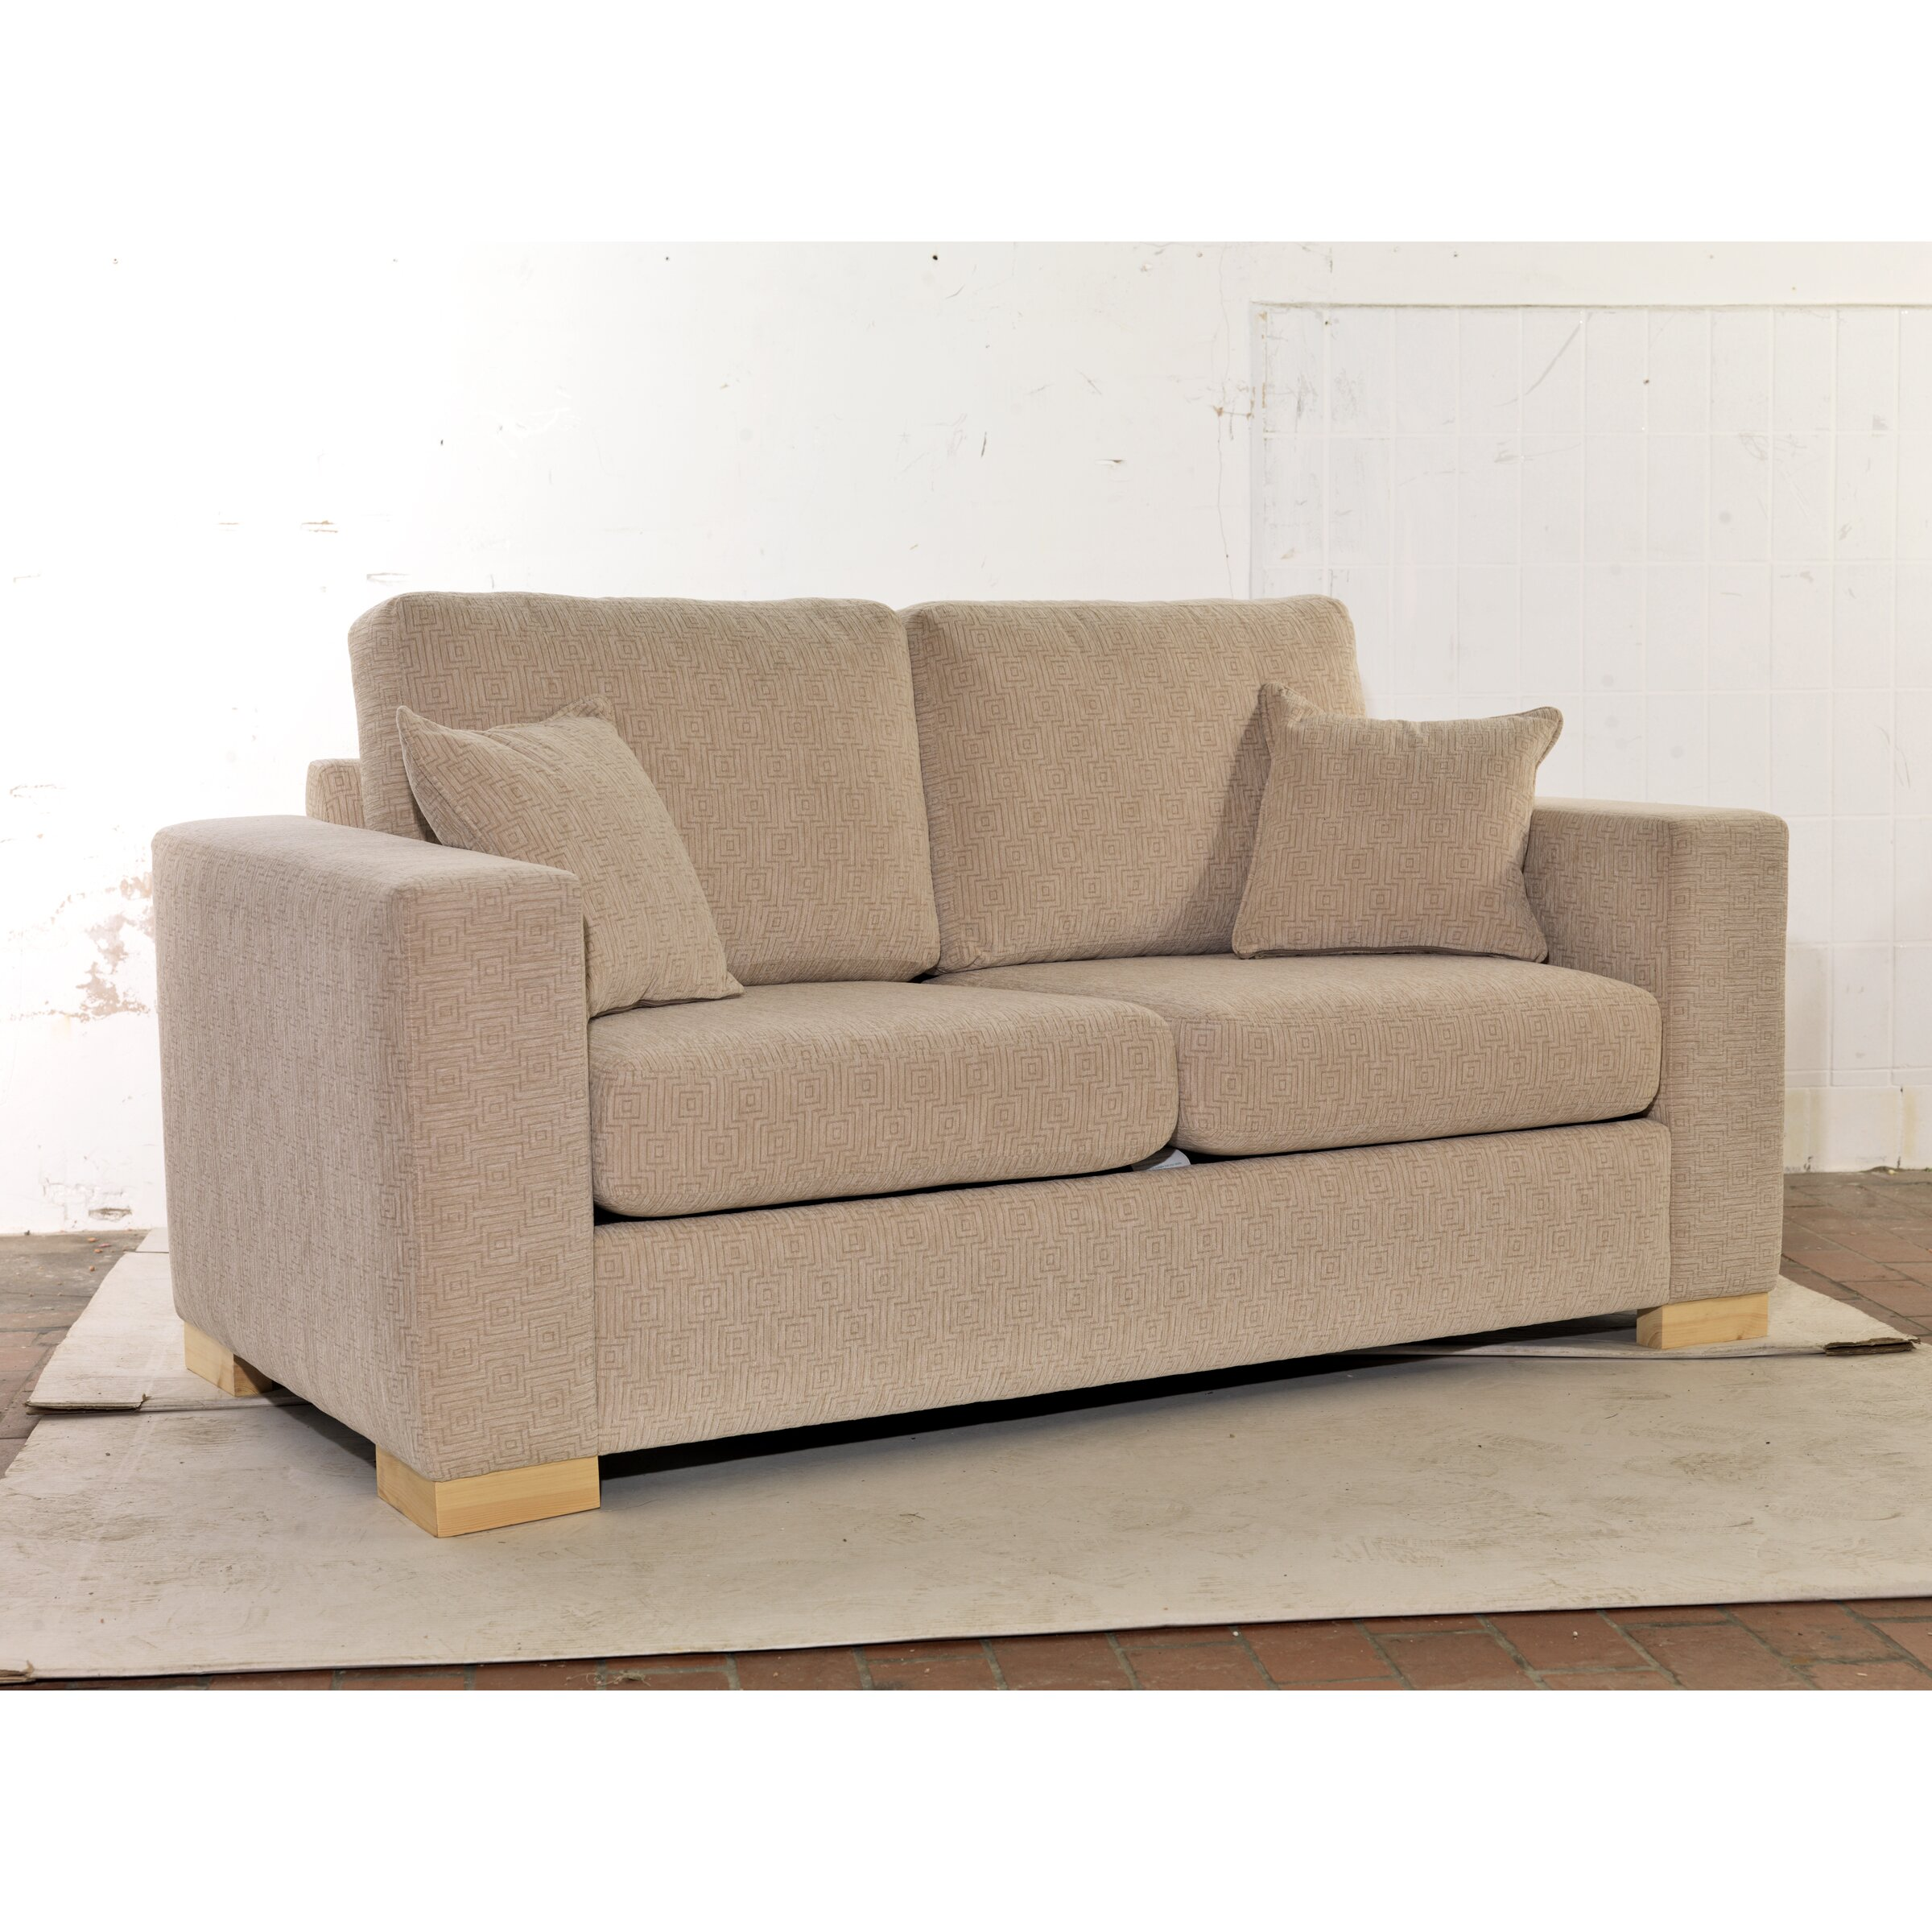 Sofa Bed With Chaise Lounge Uk